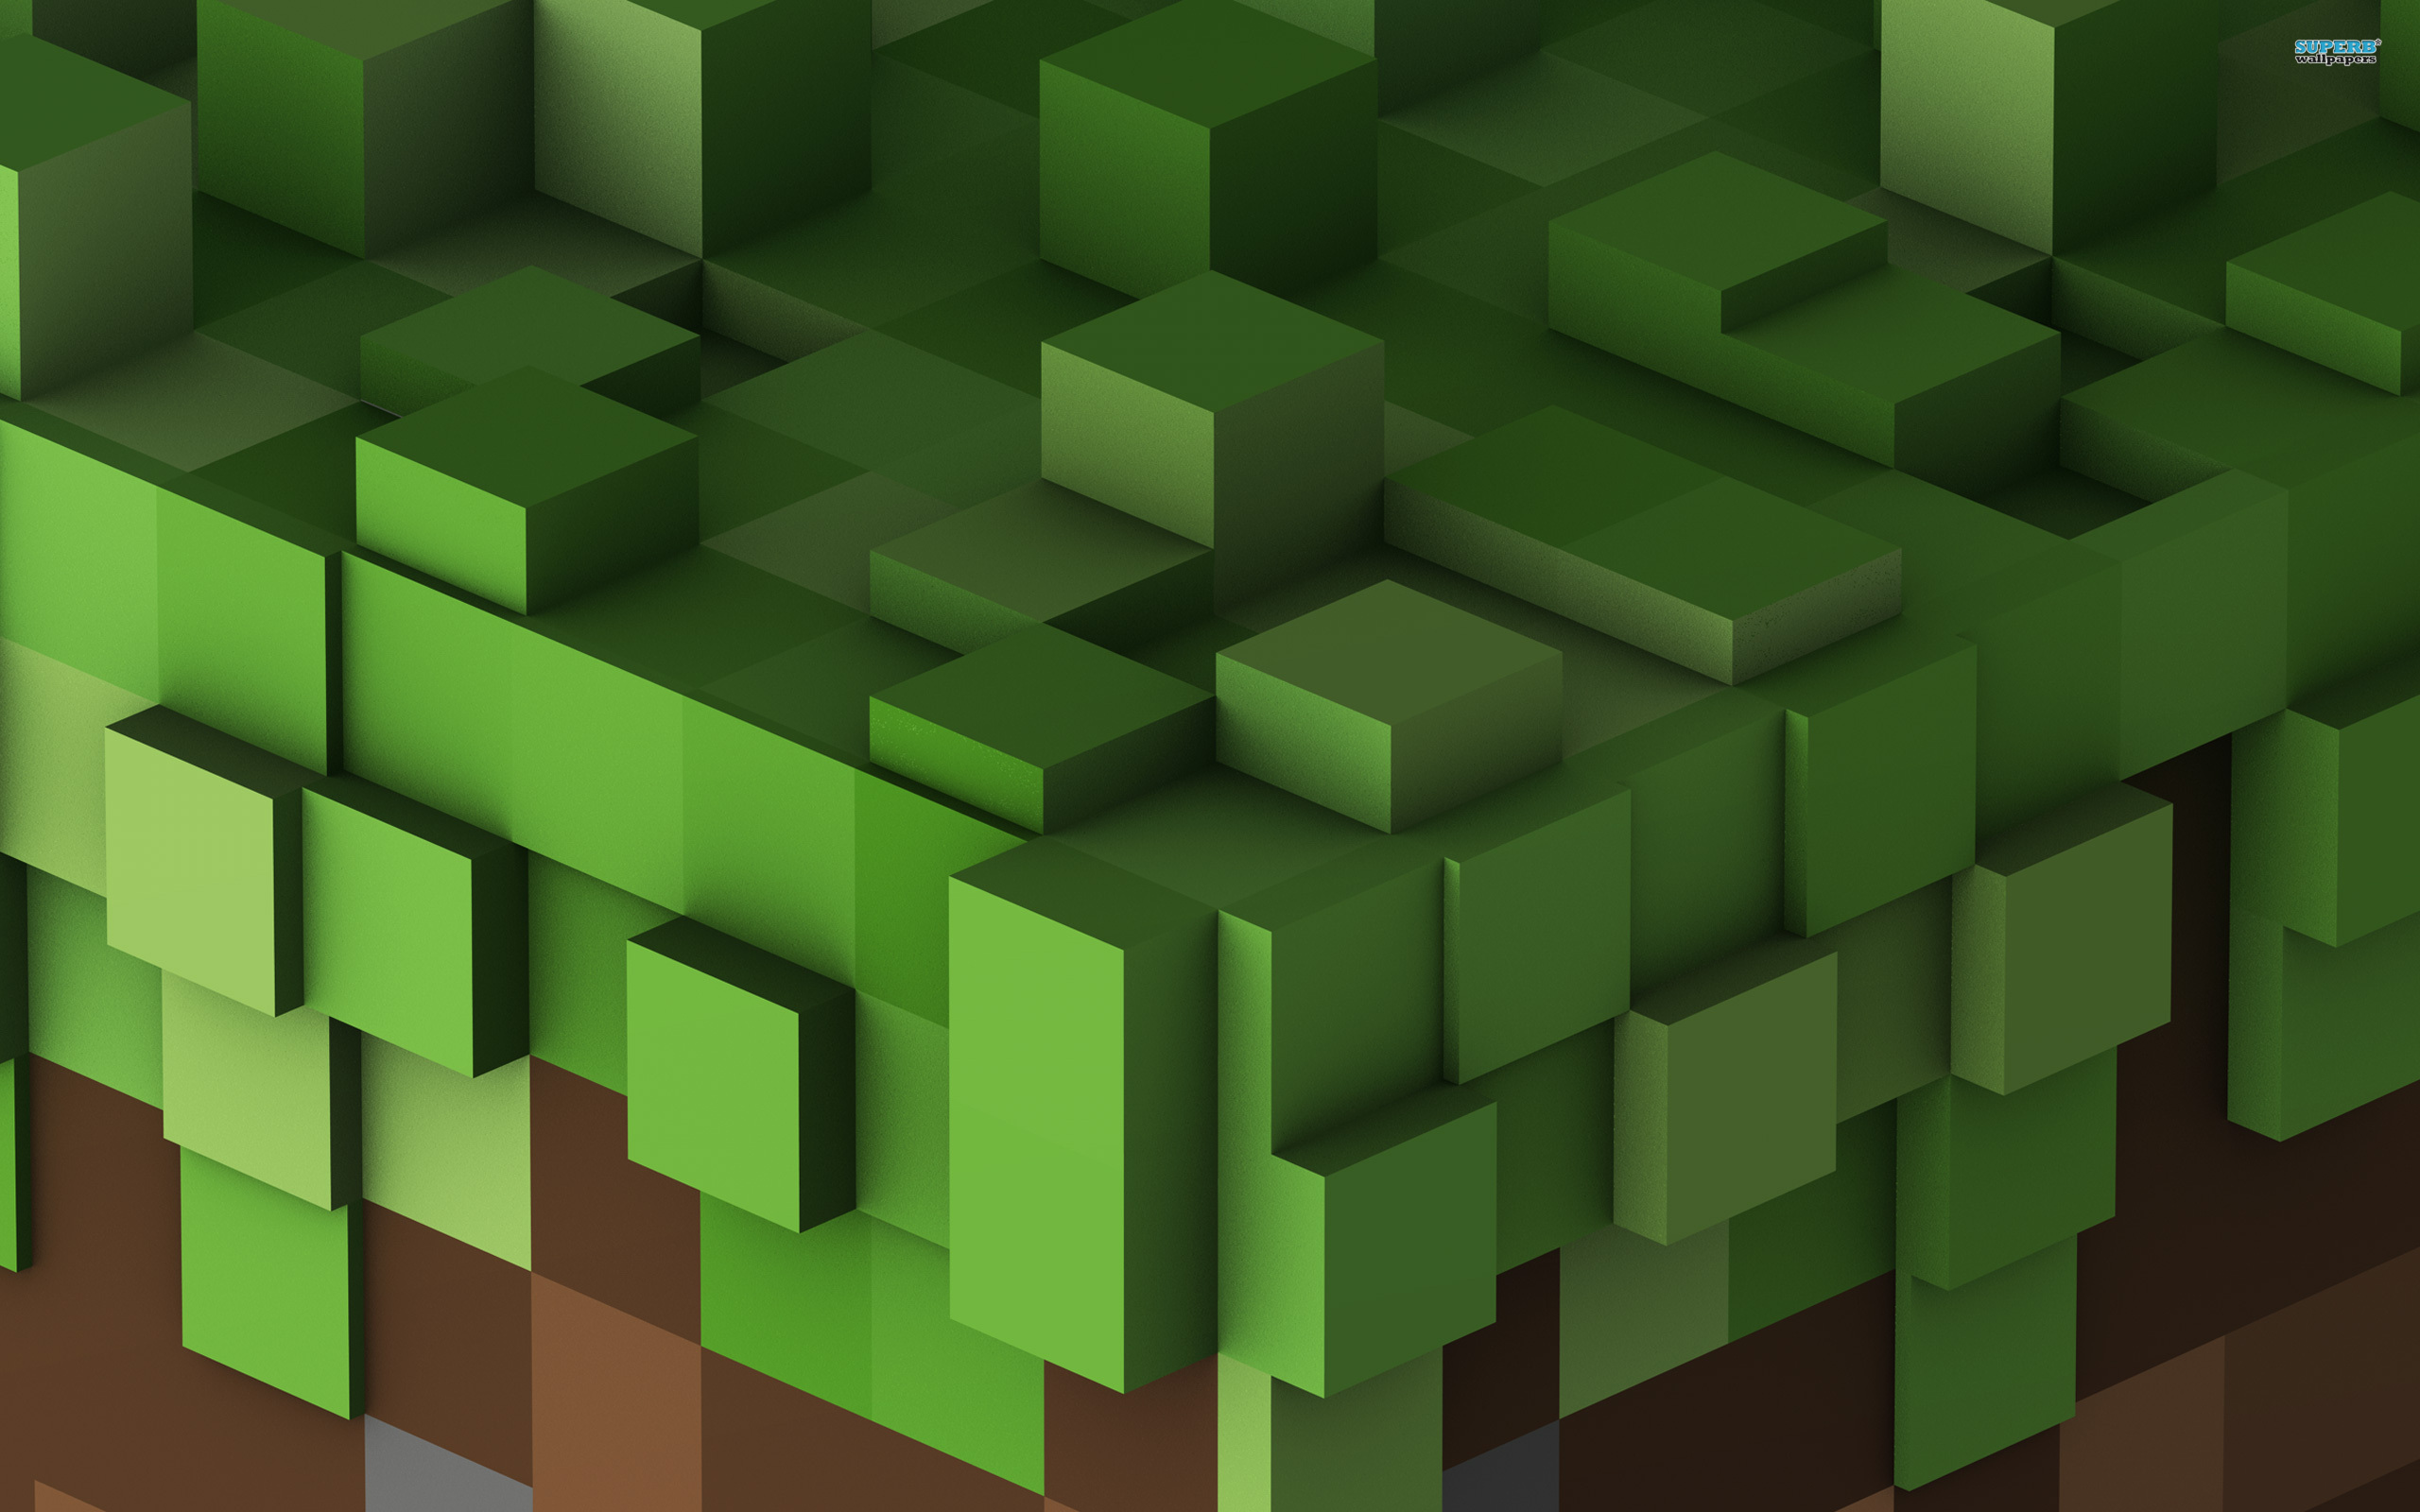 Minecraft Wallpaper Rincon Util